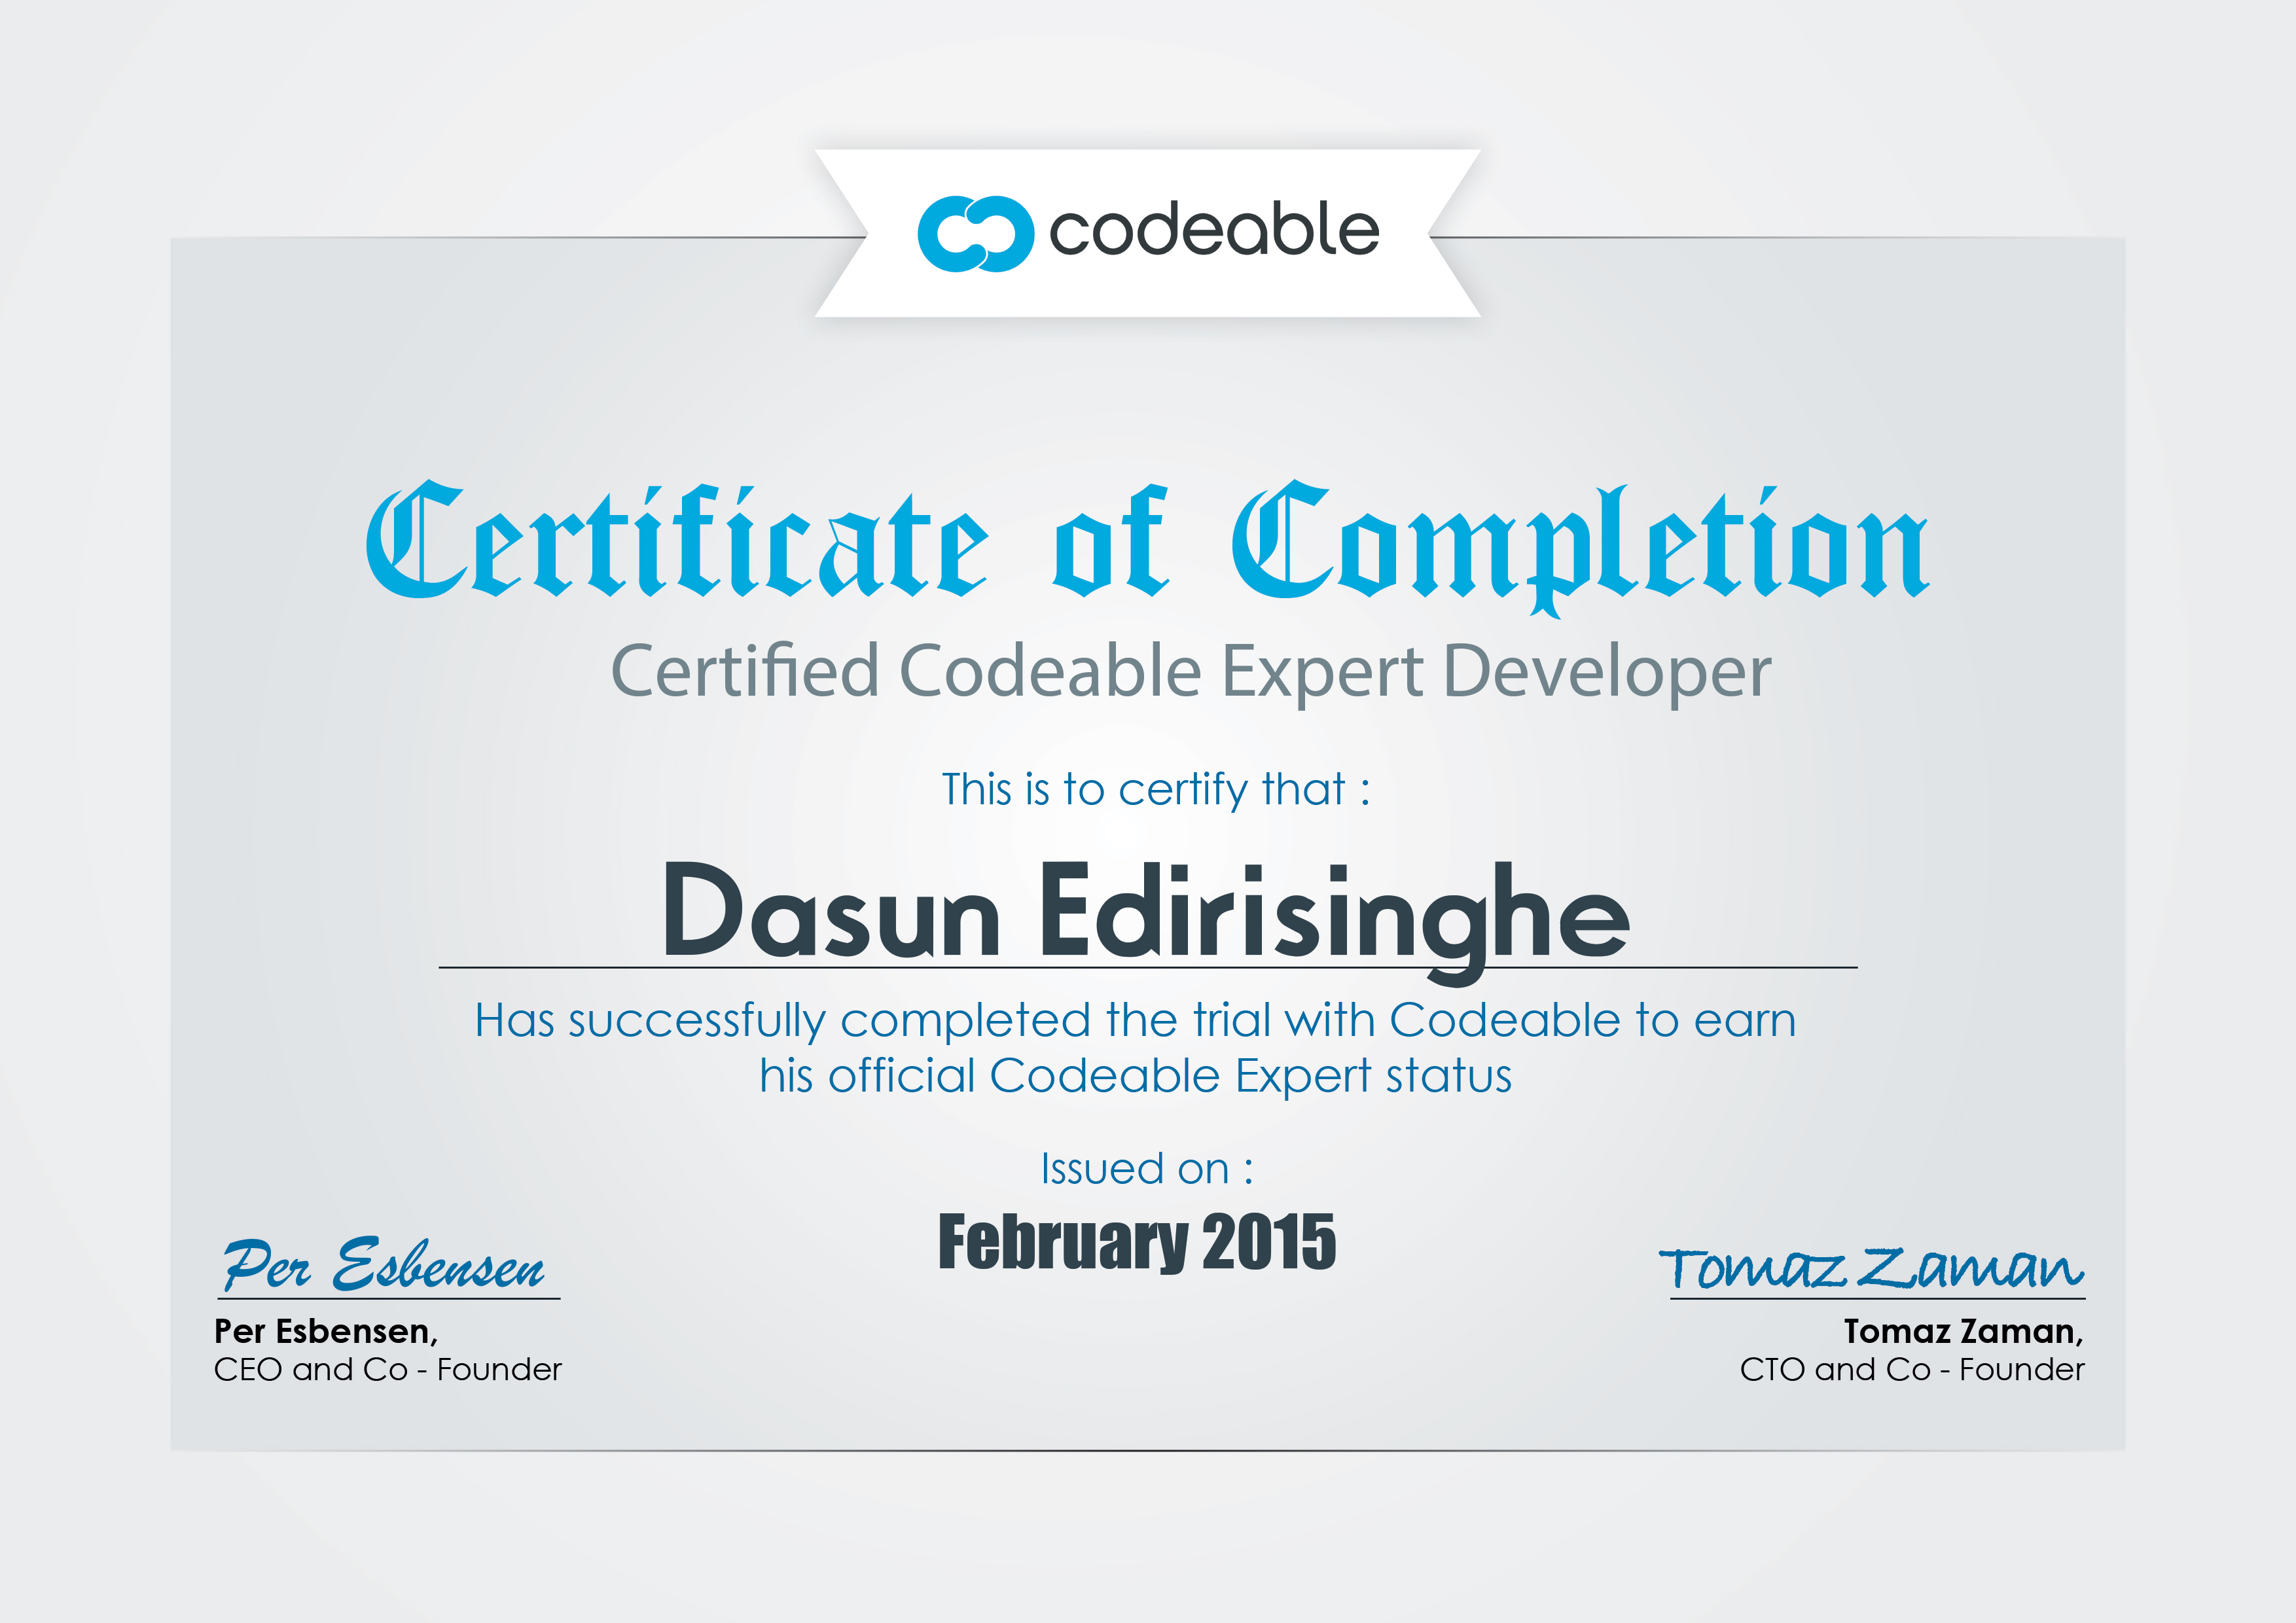 Codeable Expert Dasun